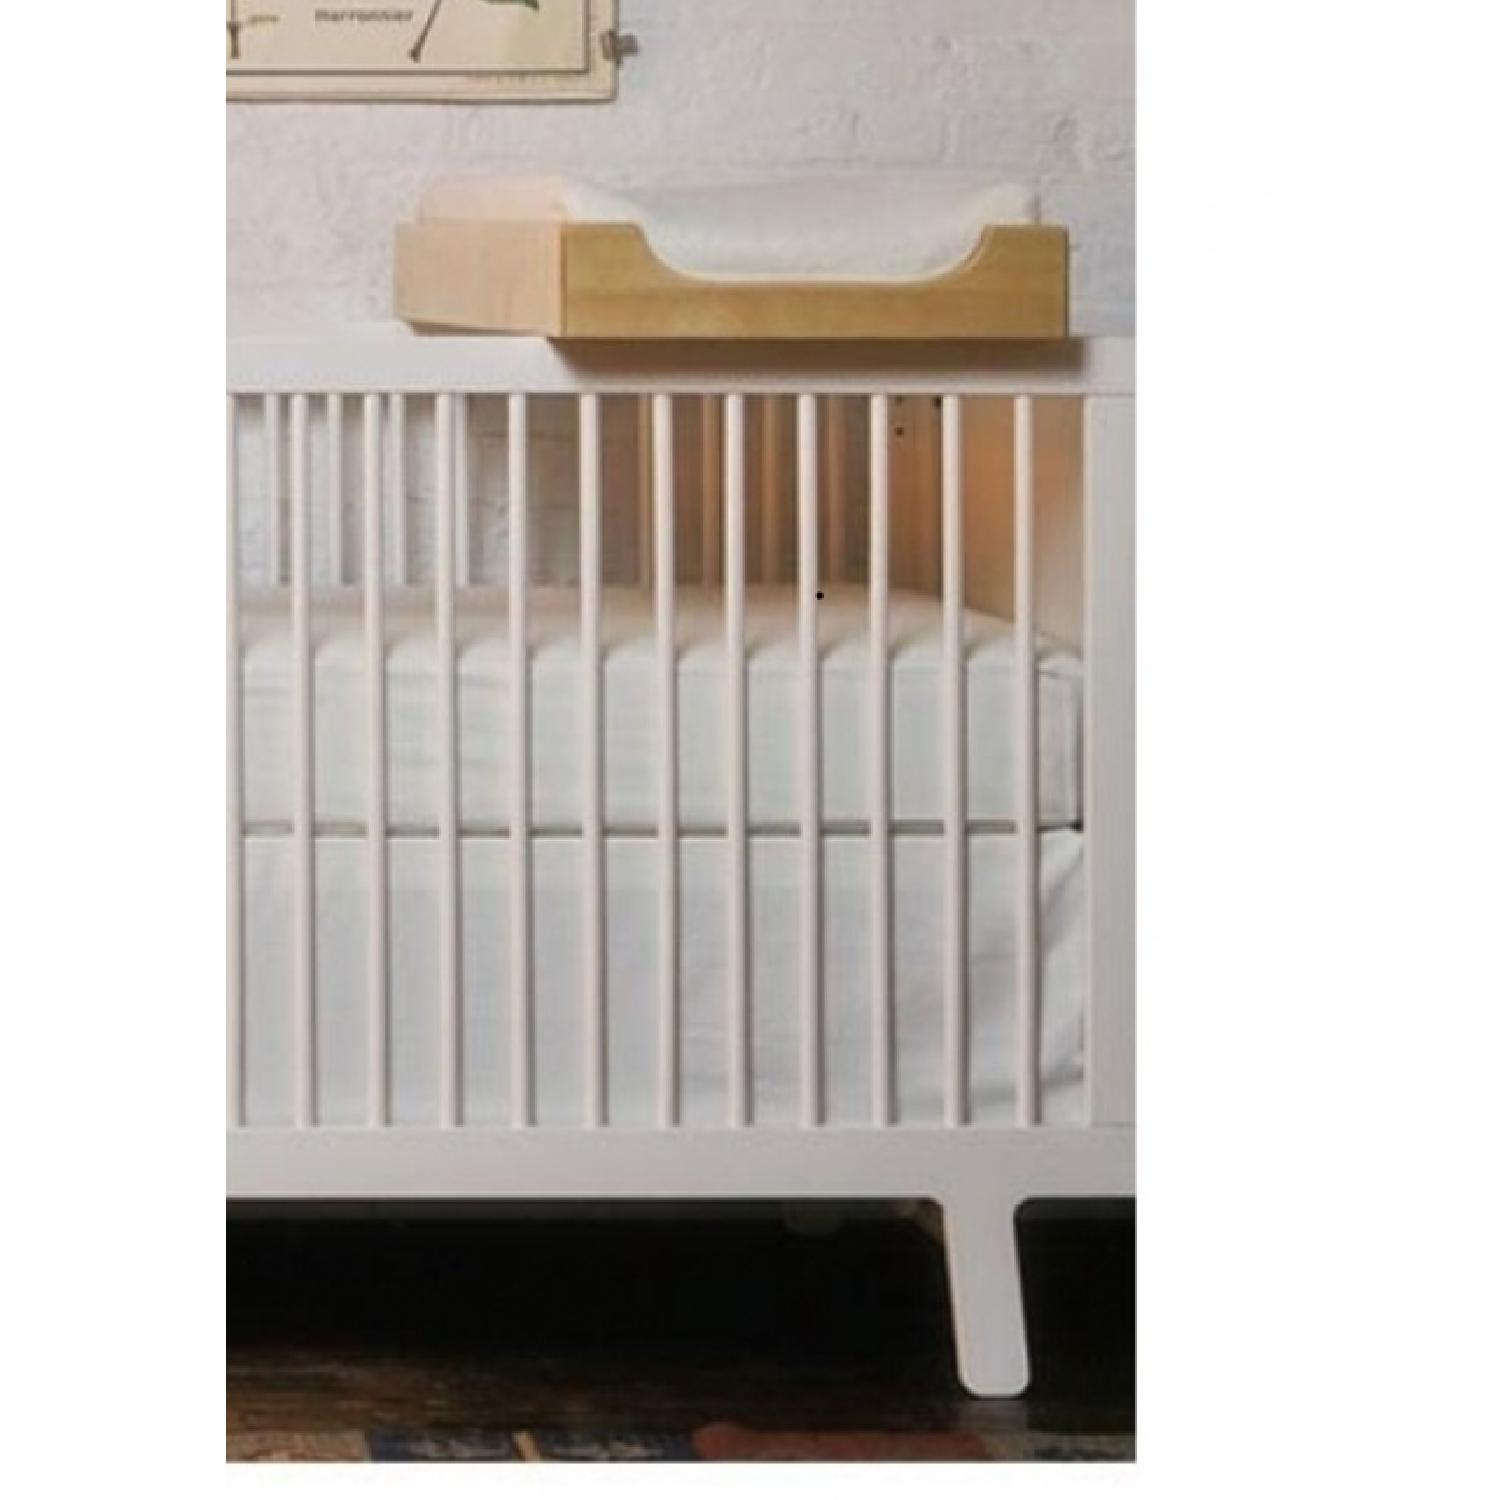 0241f3287835 ... Oeuf Sparrow Crib w/ Changing Table Top-1 ...